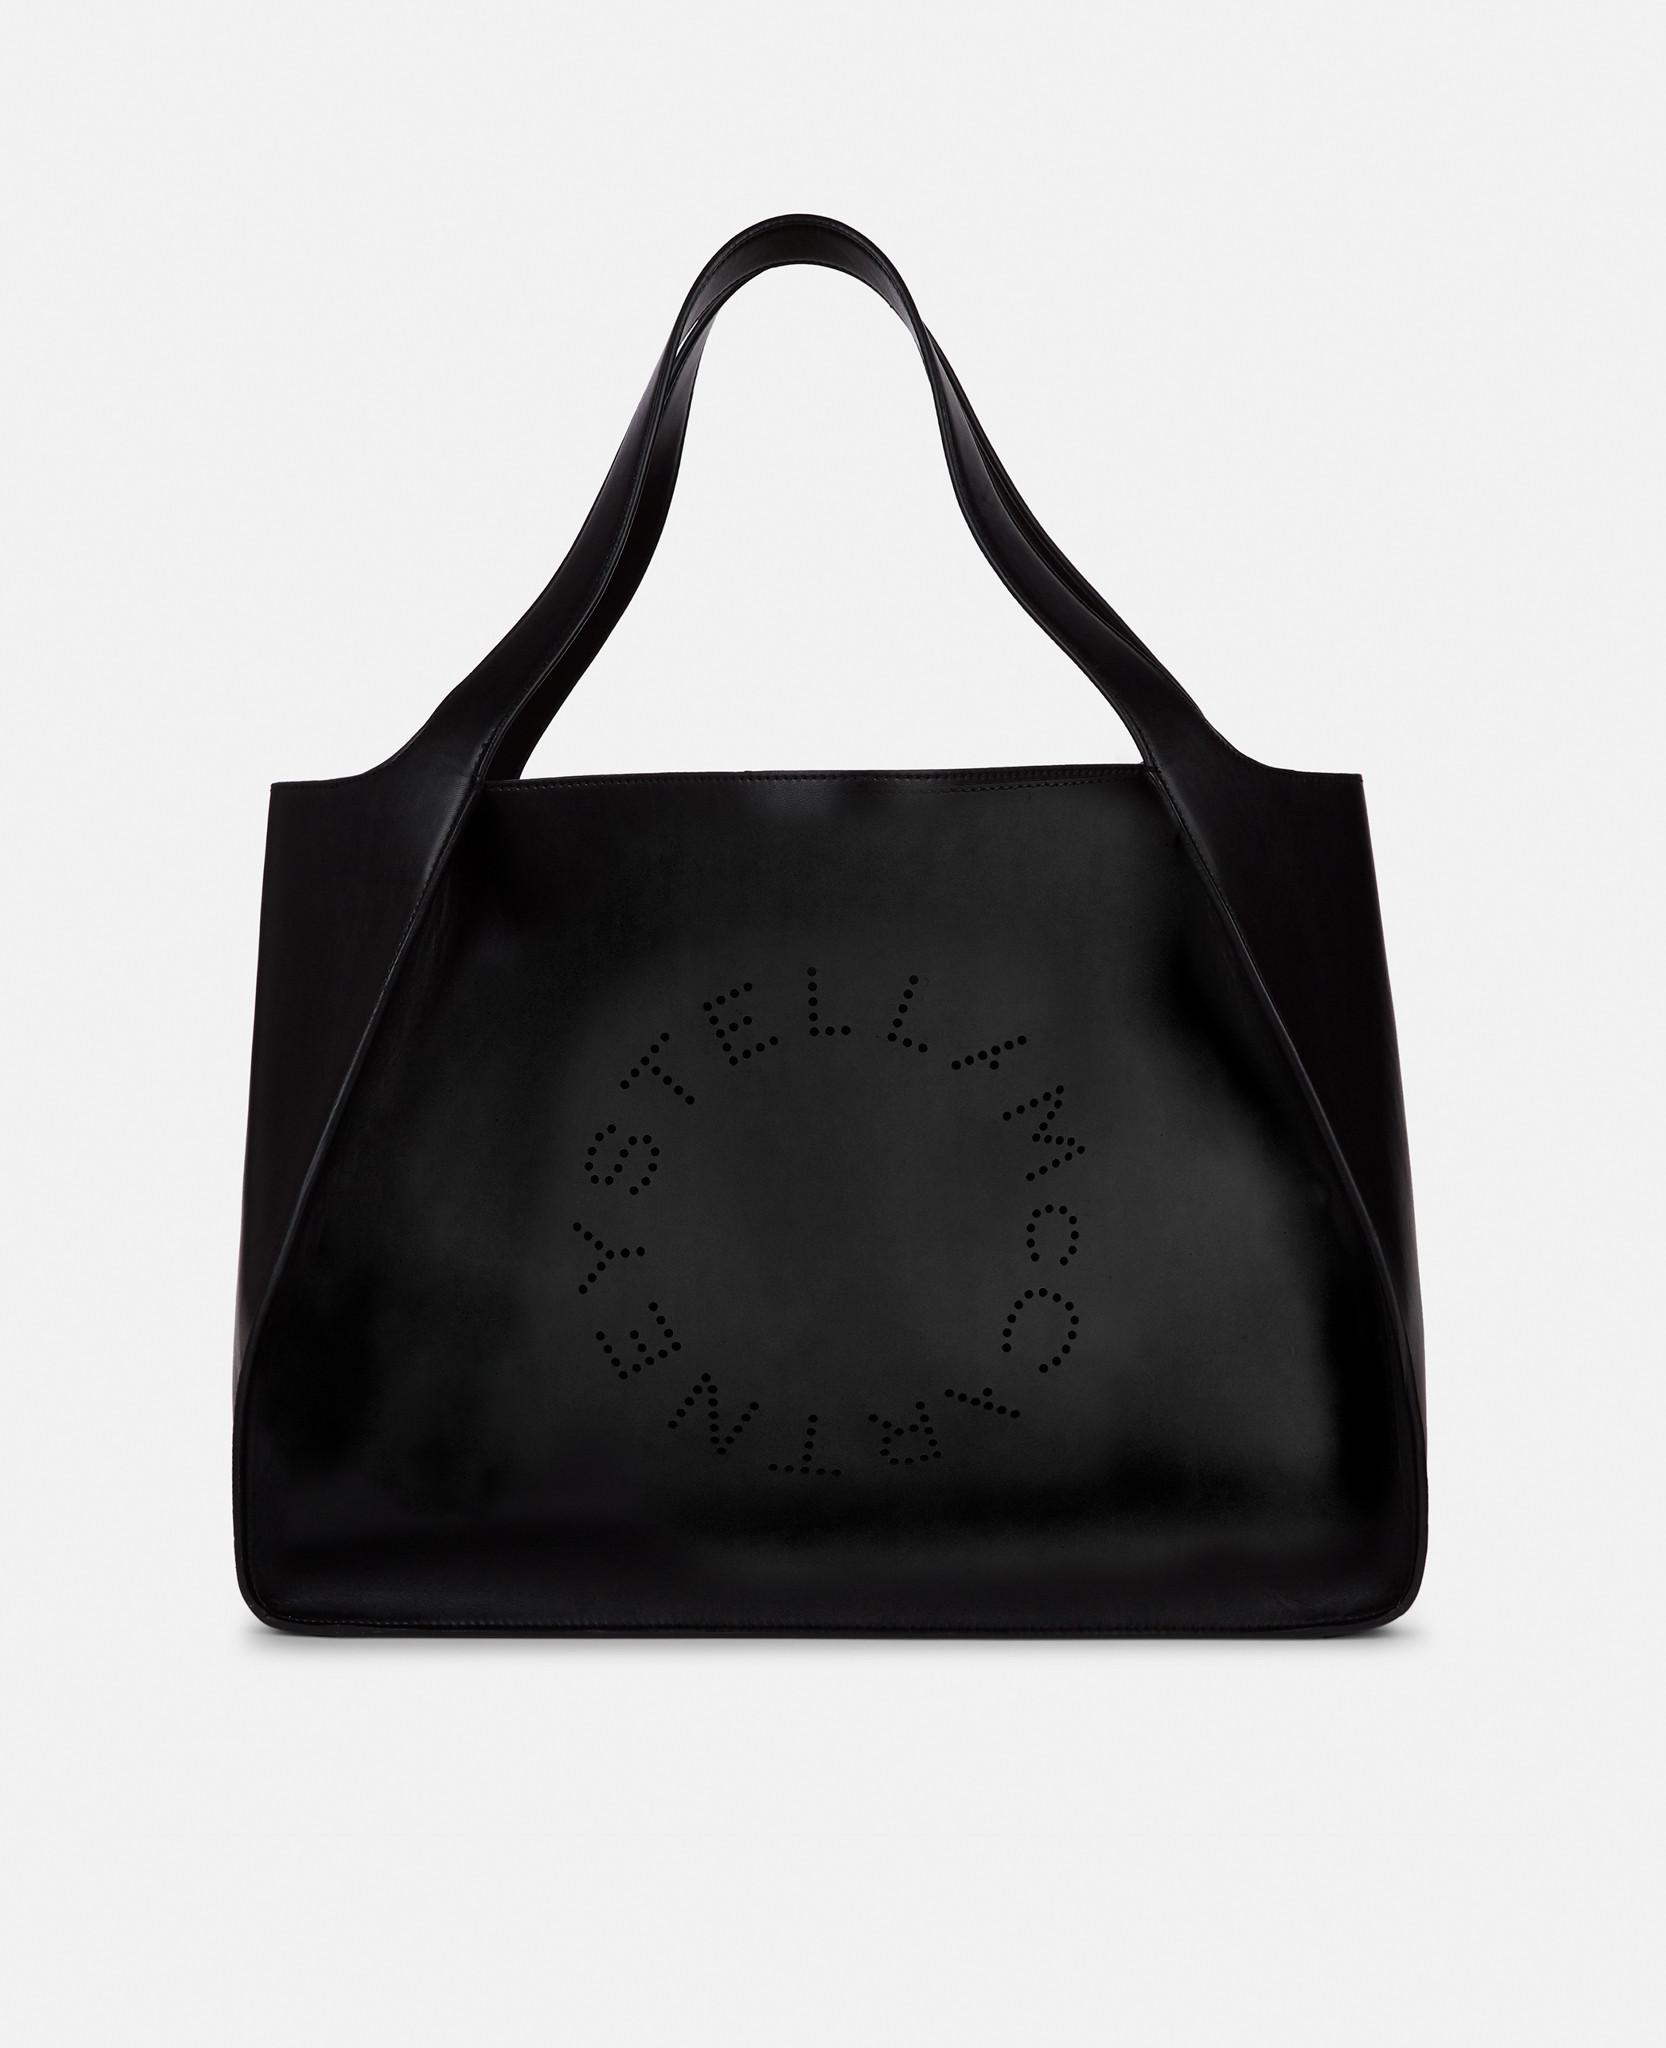 ac5c2b2188e5 Lyst - Stella McCartney Stella Logo Tote Bag in Black